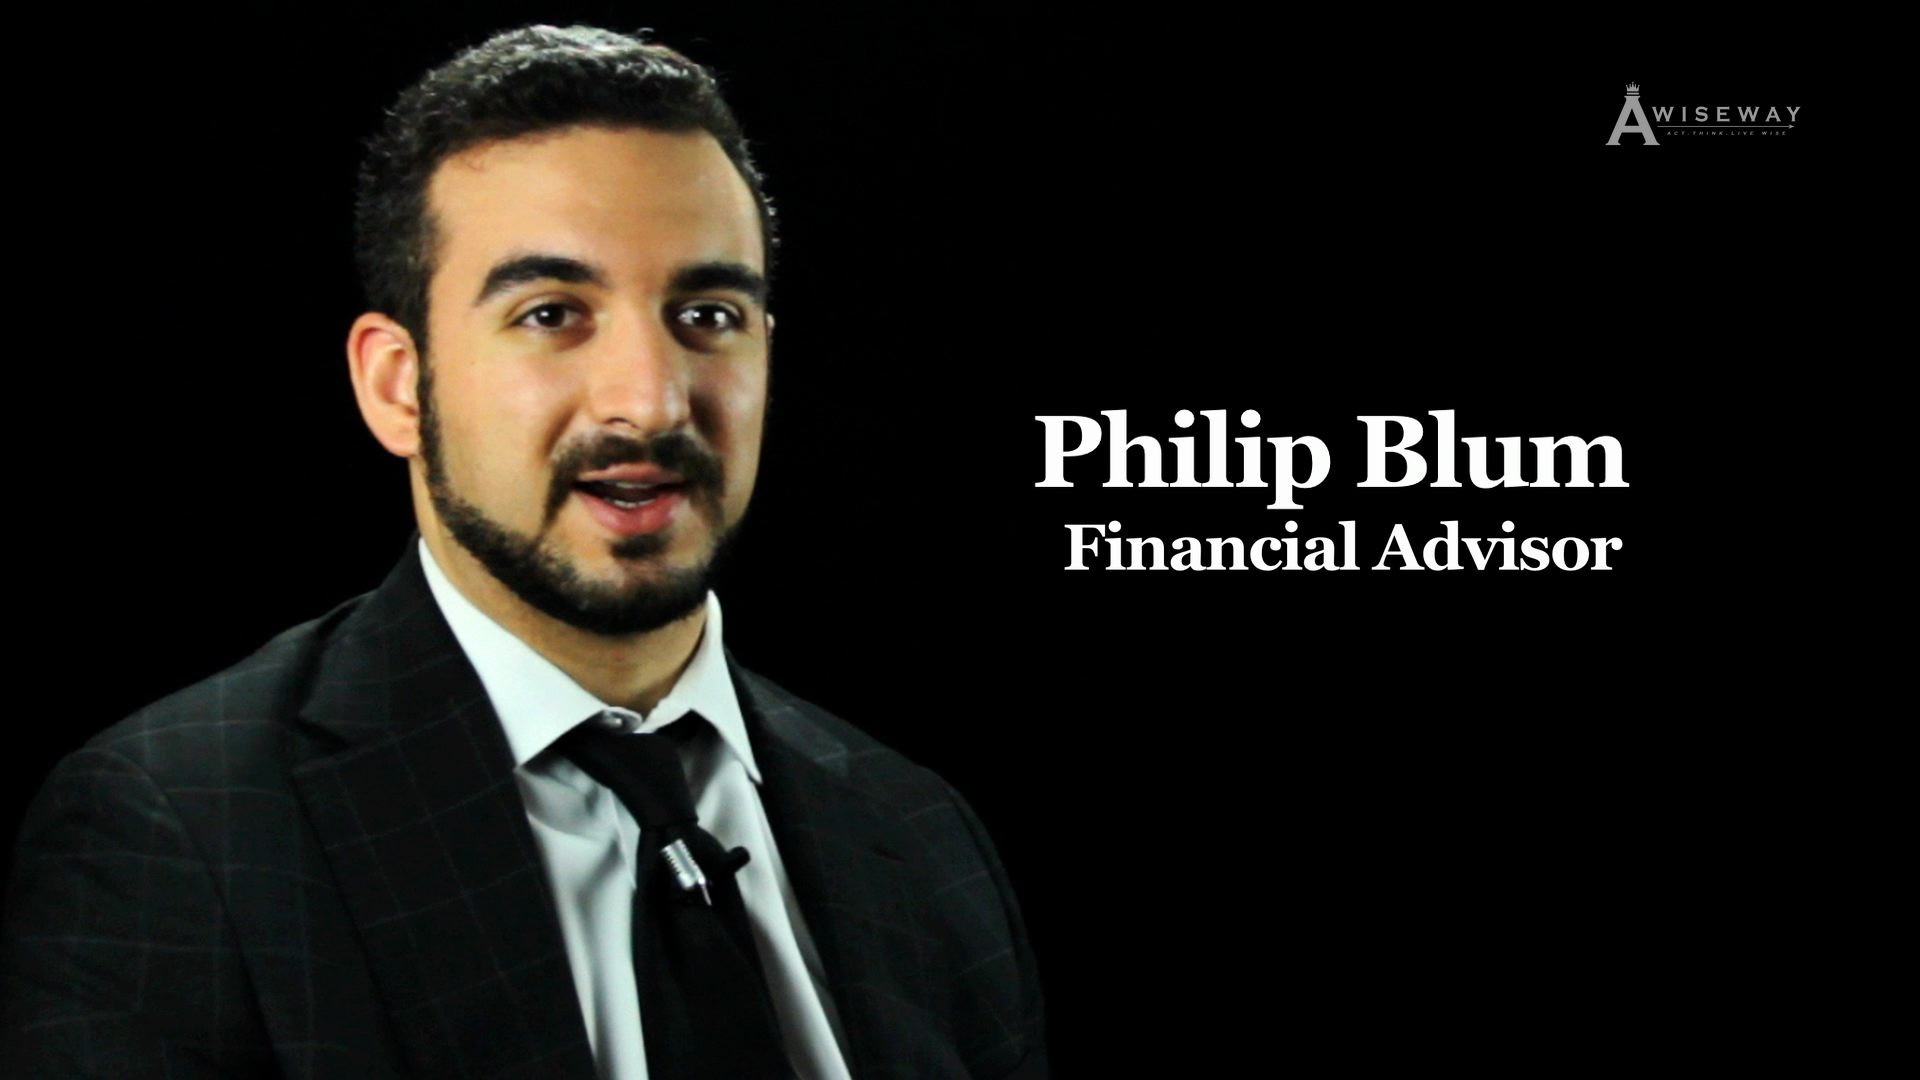 What is Most Important Financial Advice for Any Age?